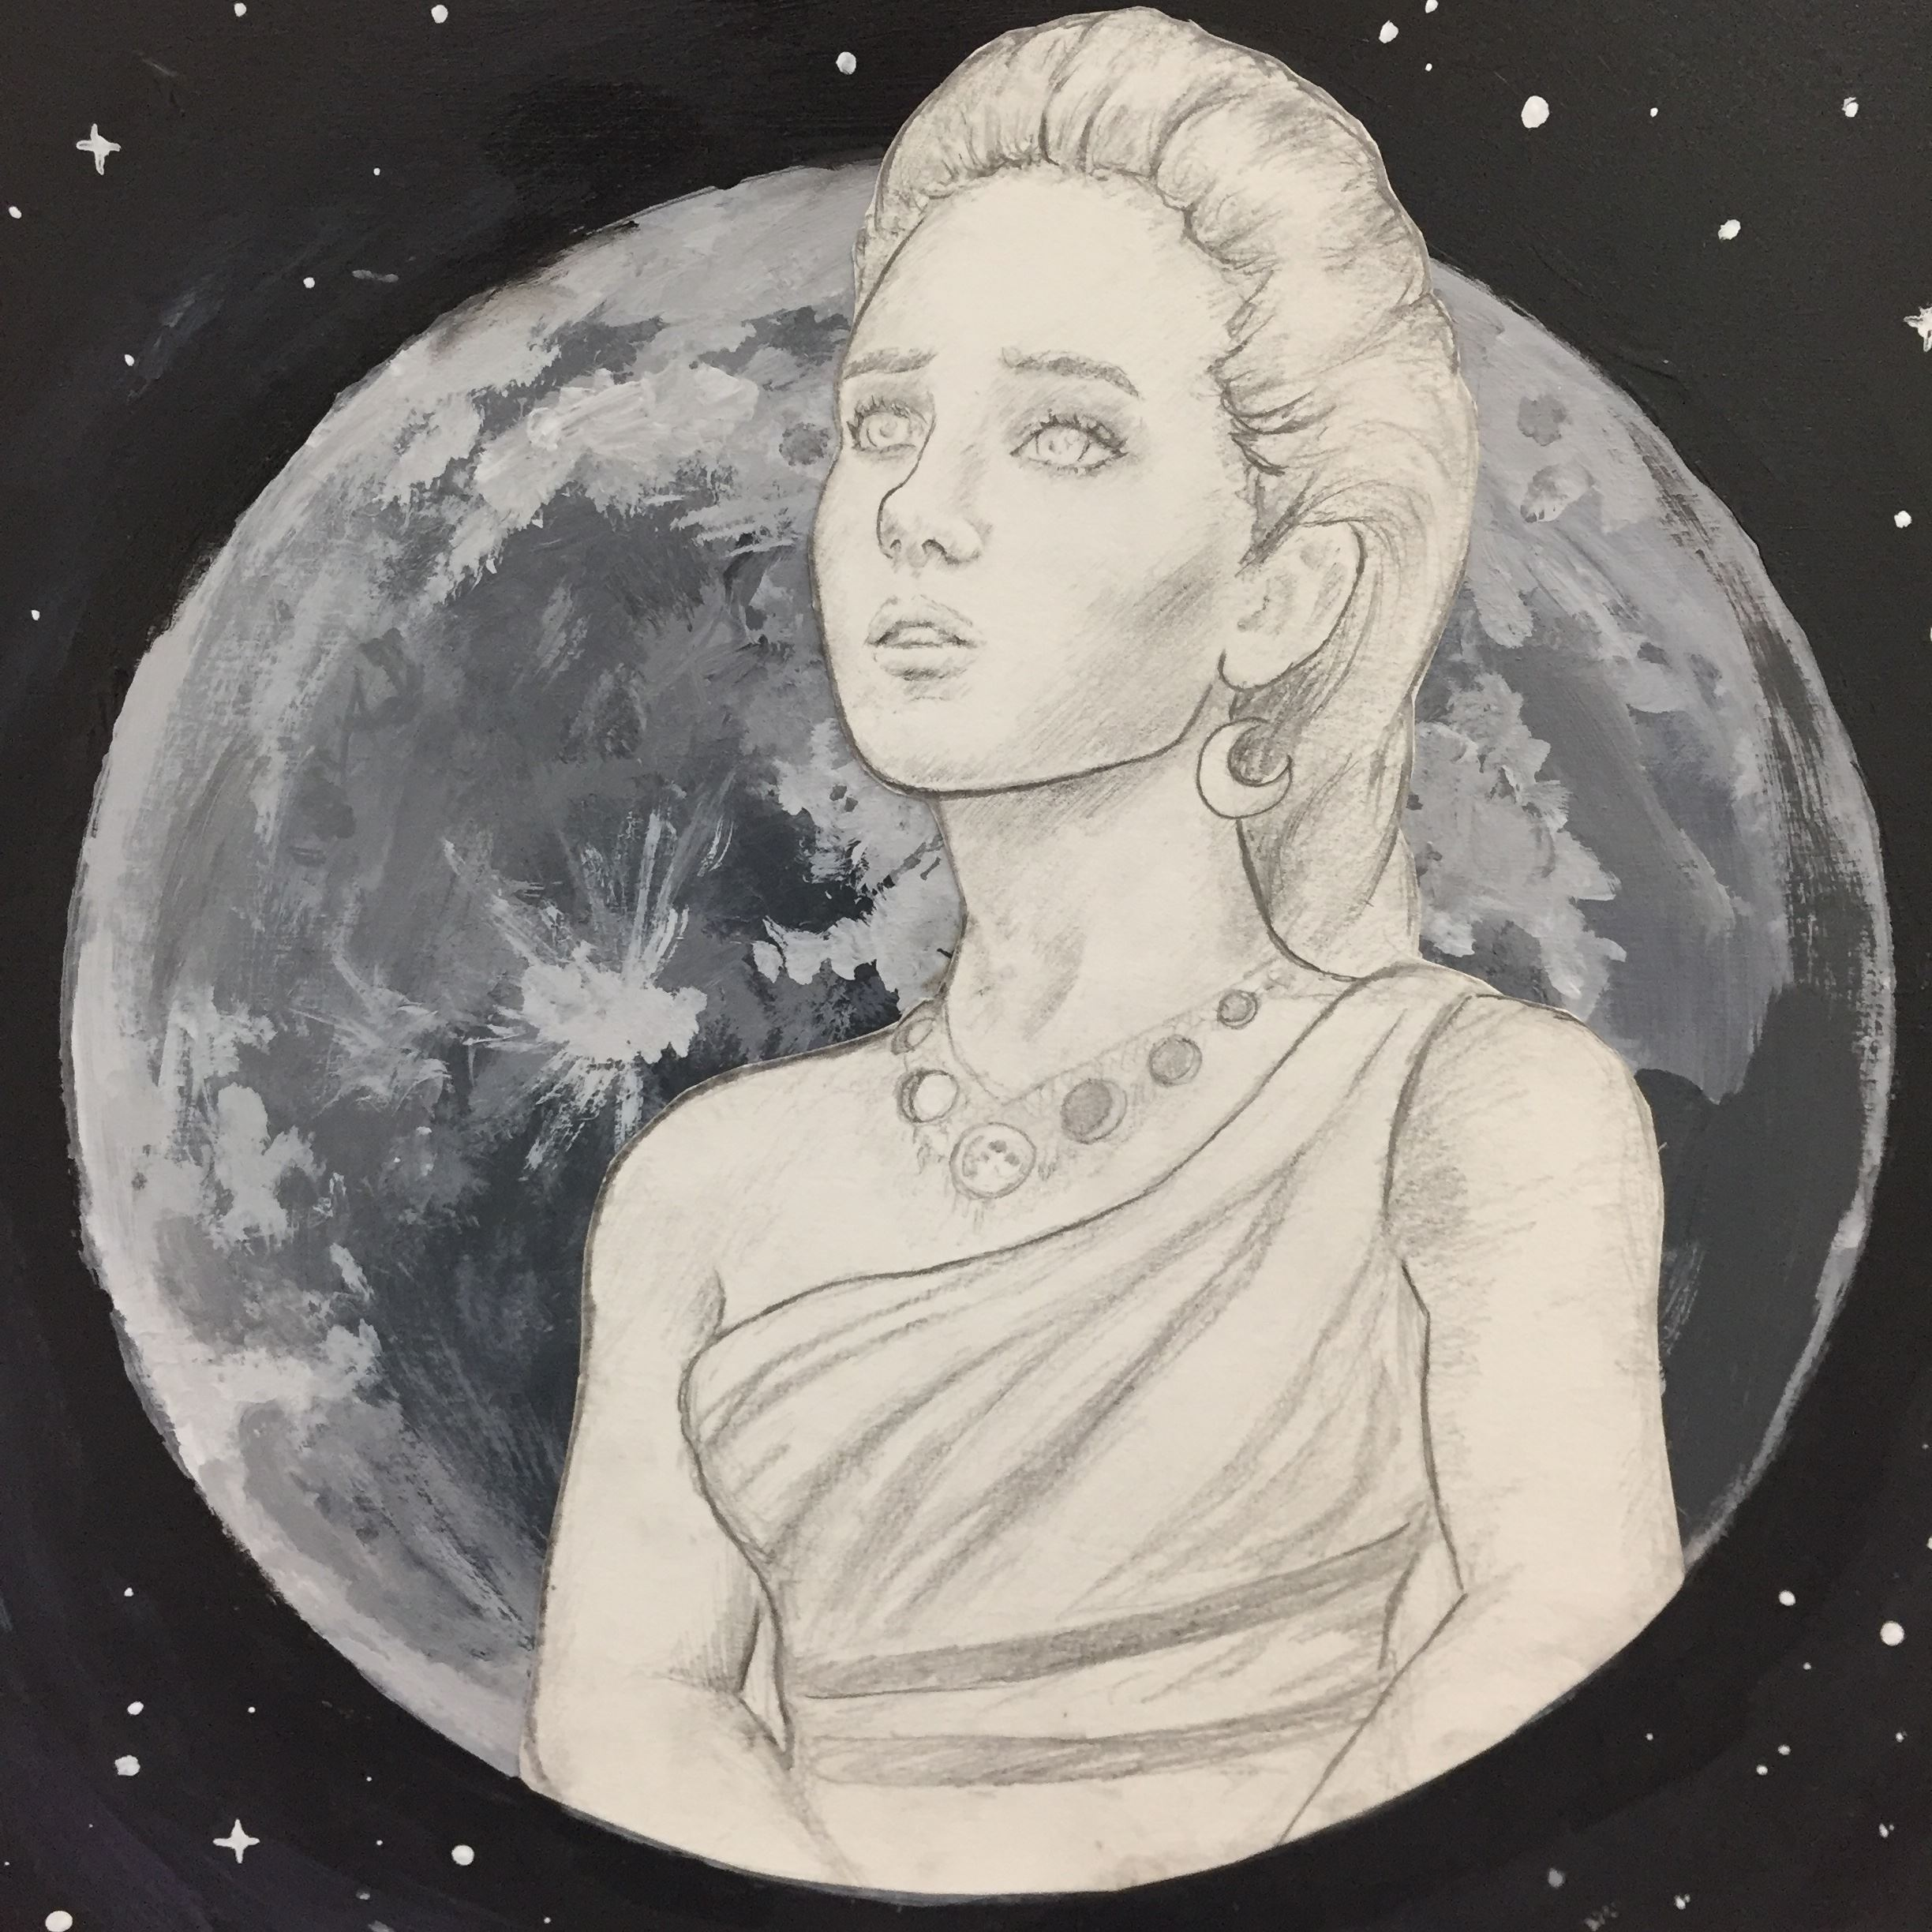 Black and white painting of woman in front of planet